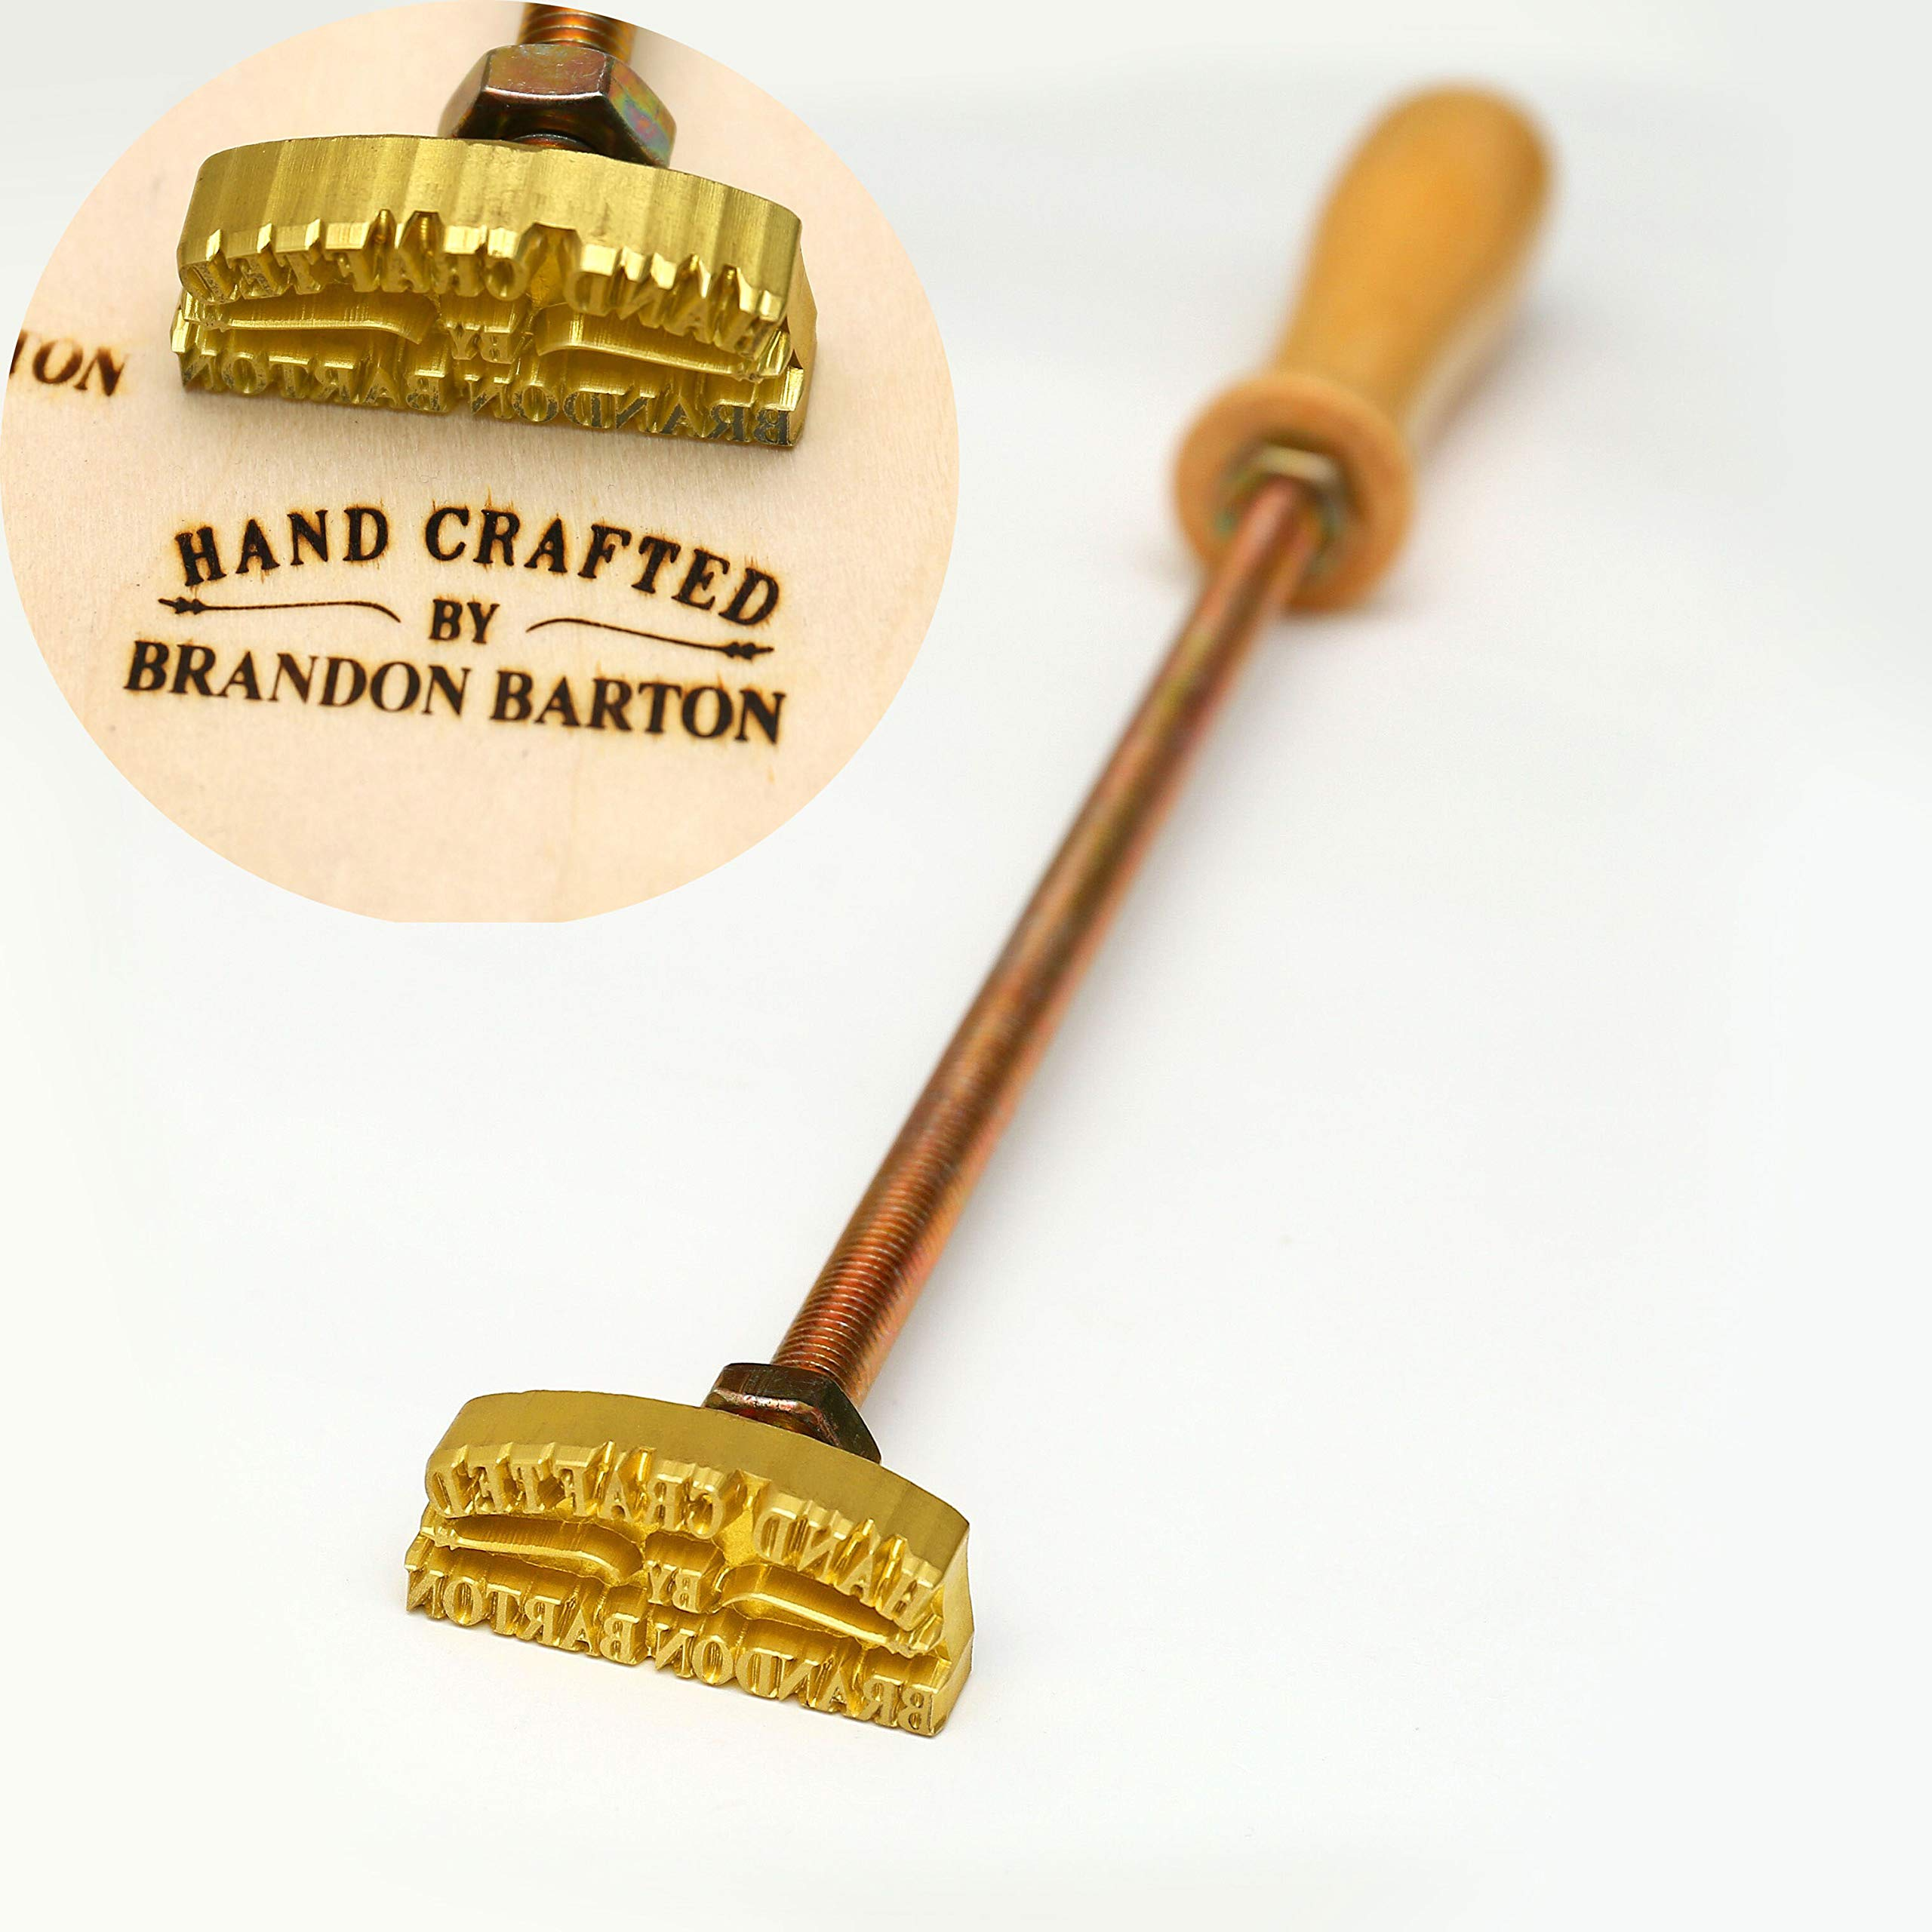 Custom Logo Wood Branding Iron,Durable Leather Branding Iron Stamp,Wood Branding Iron/Wedding Gift,Handcrafted by Design (1''x1'')